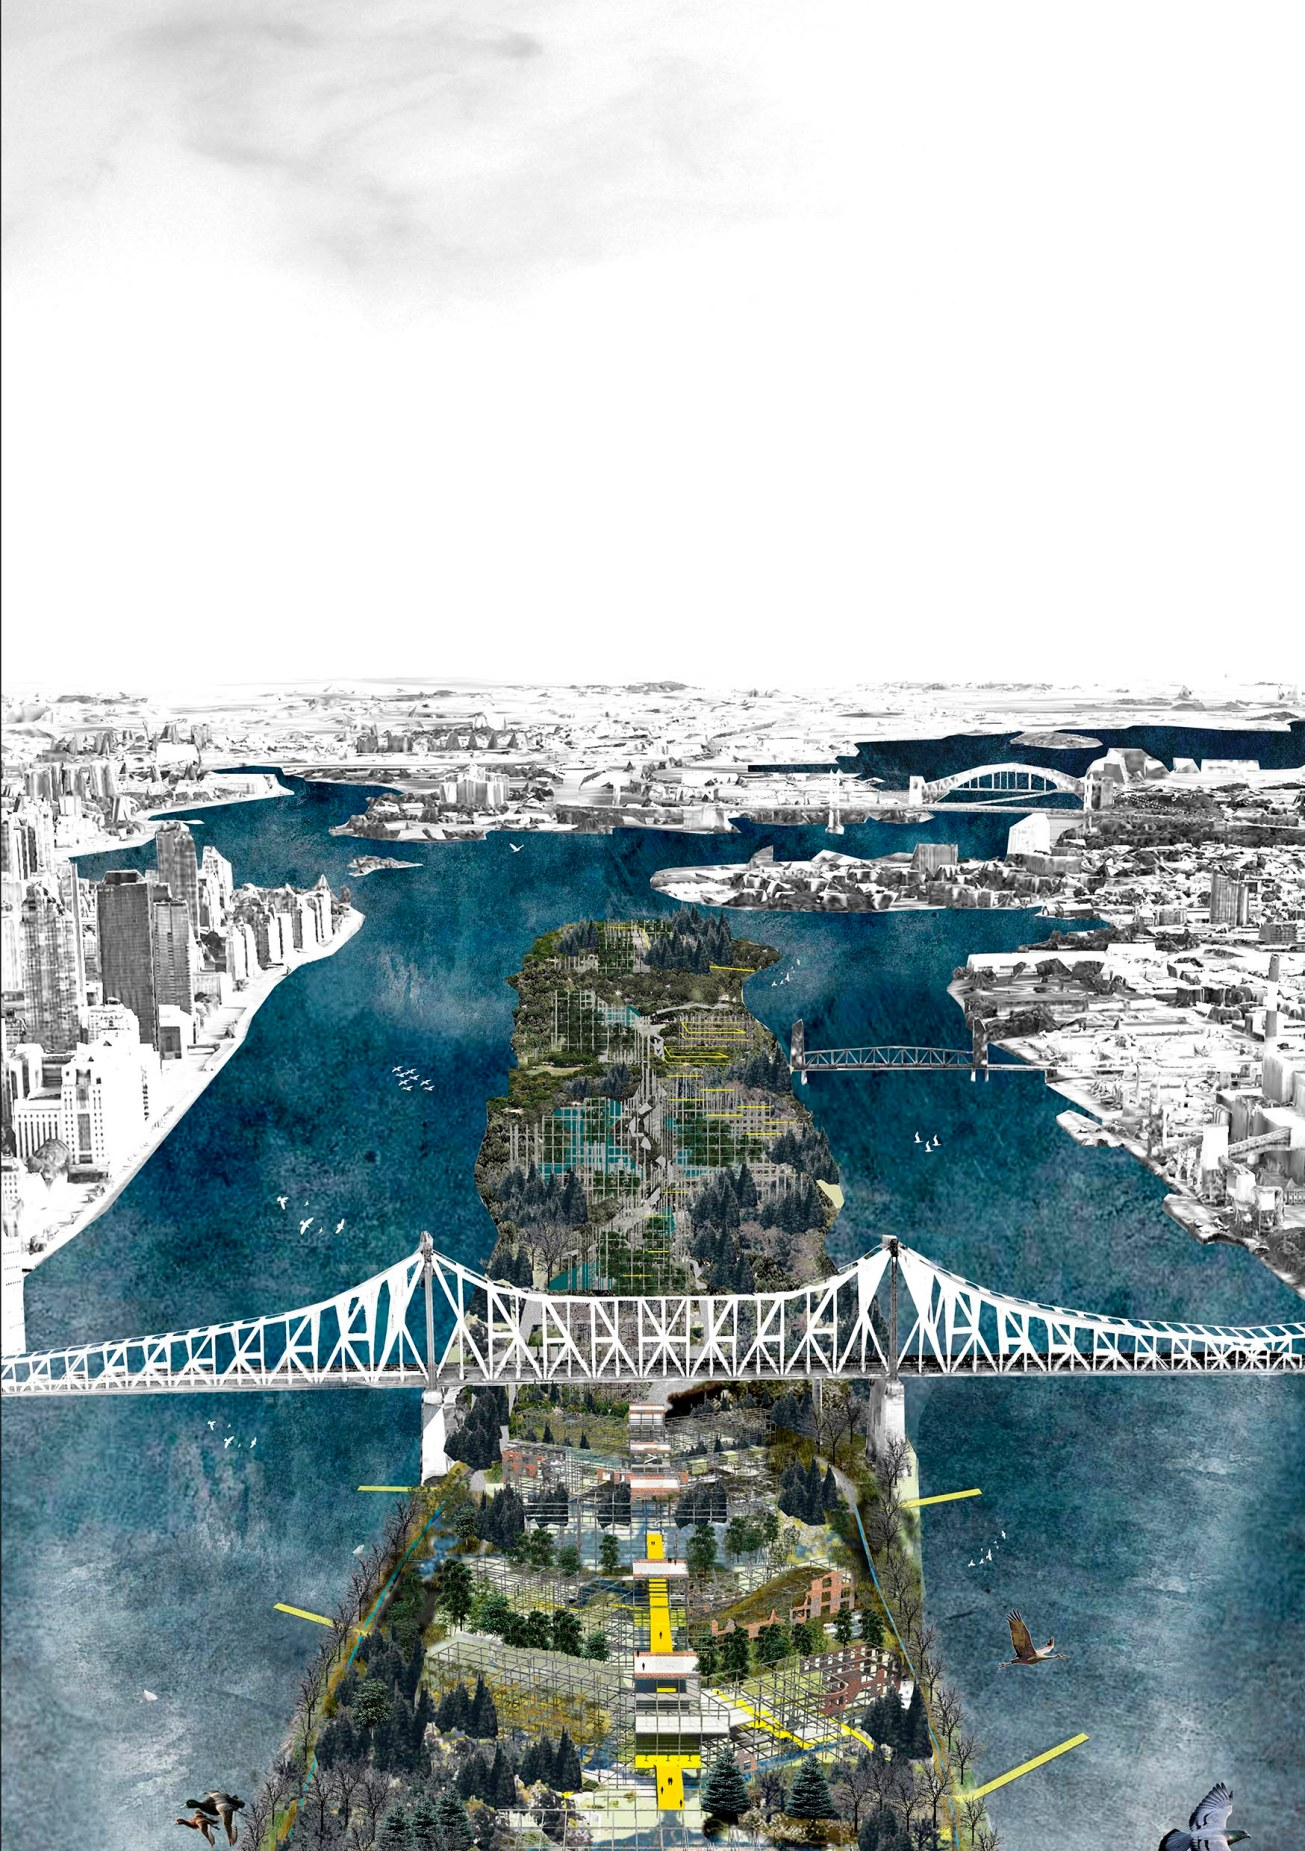 Roosevelt Island, management of the future ruins as landscape in motion, Laura Huerga, Final thesis project